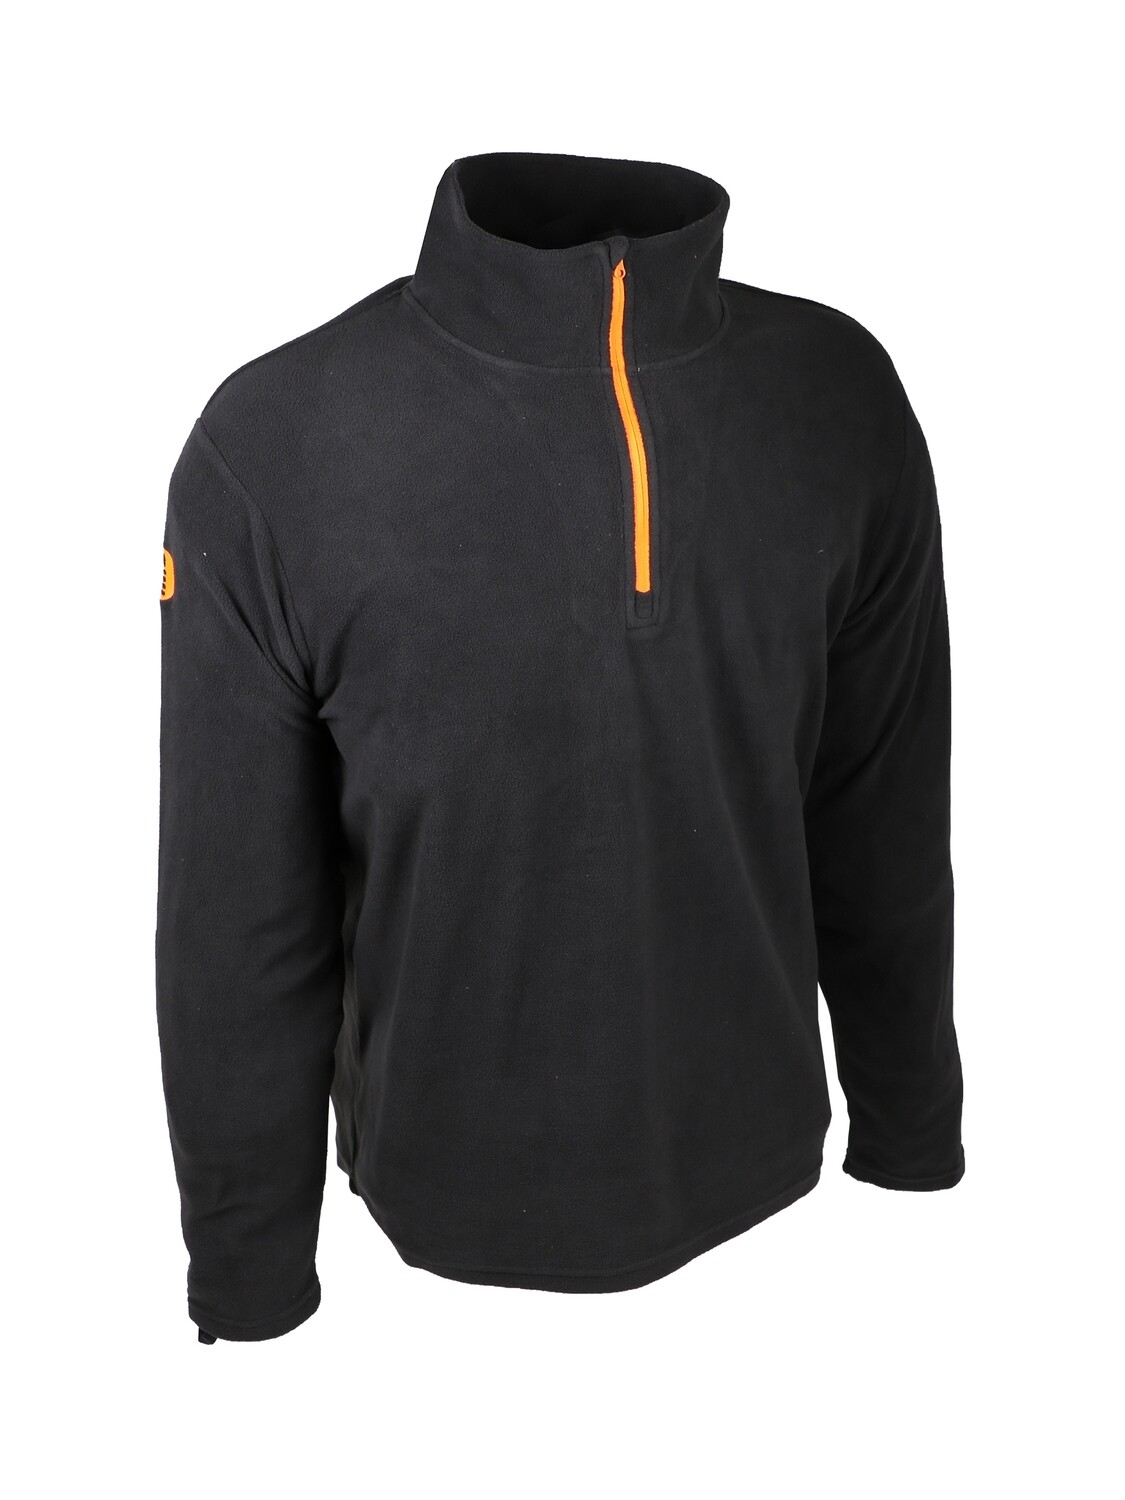 Pull polaire polyester. 150 g/m�